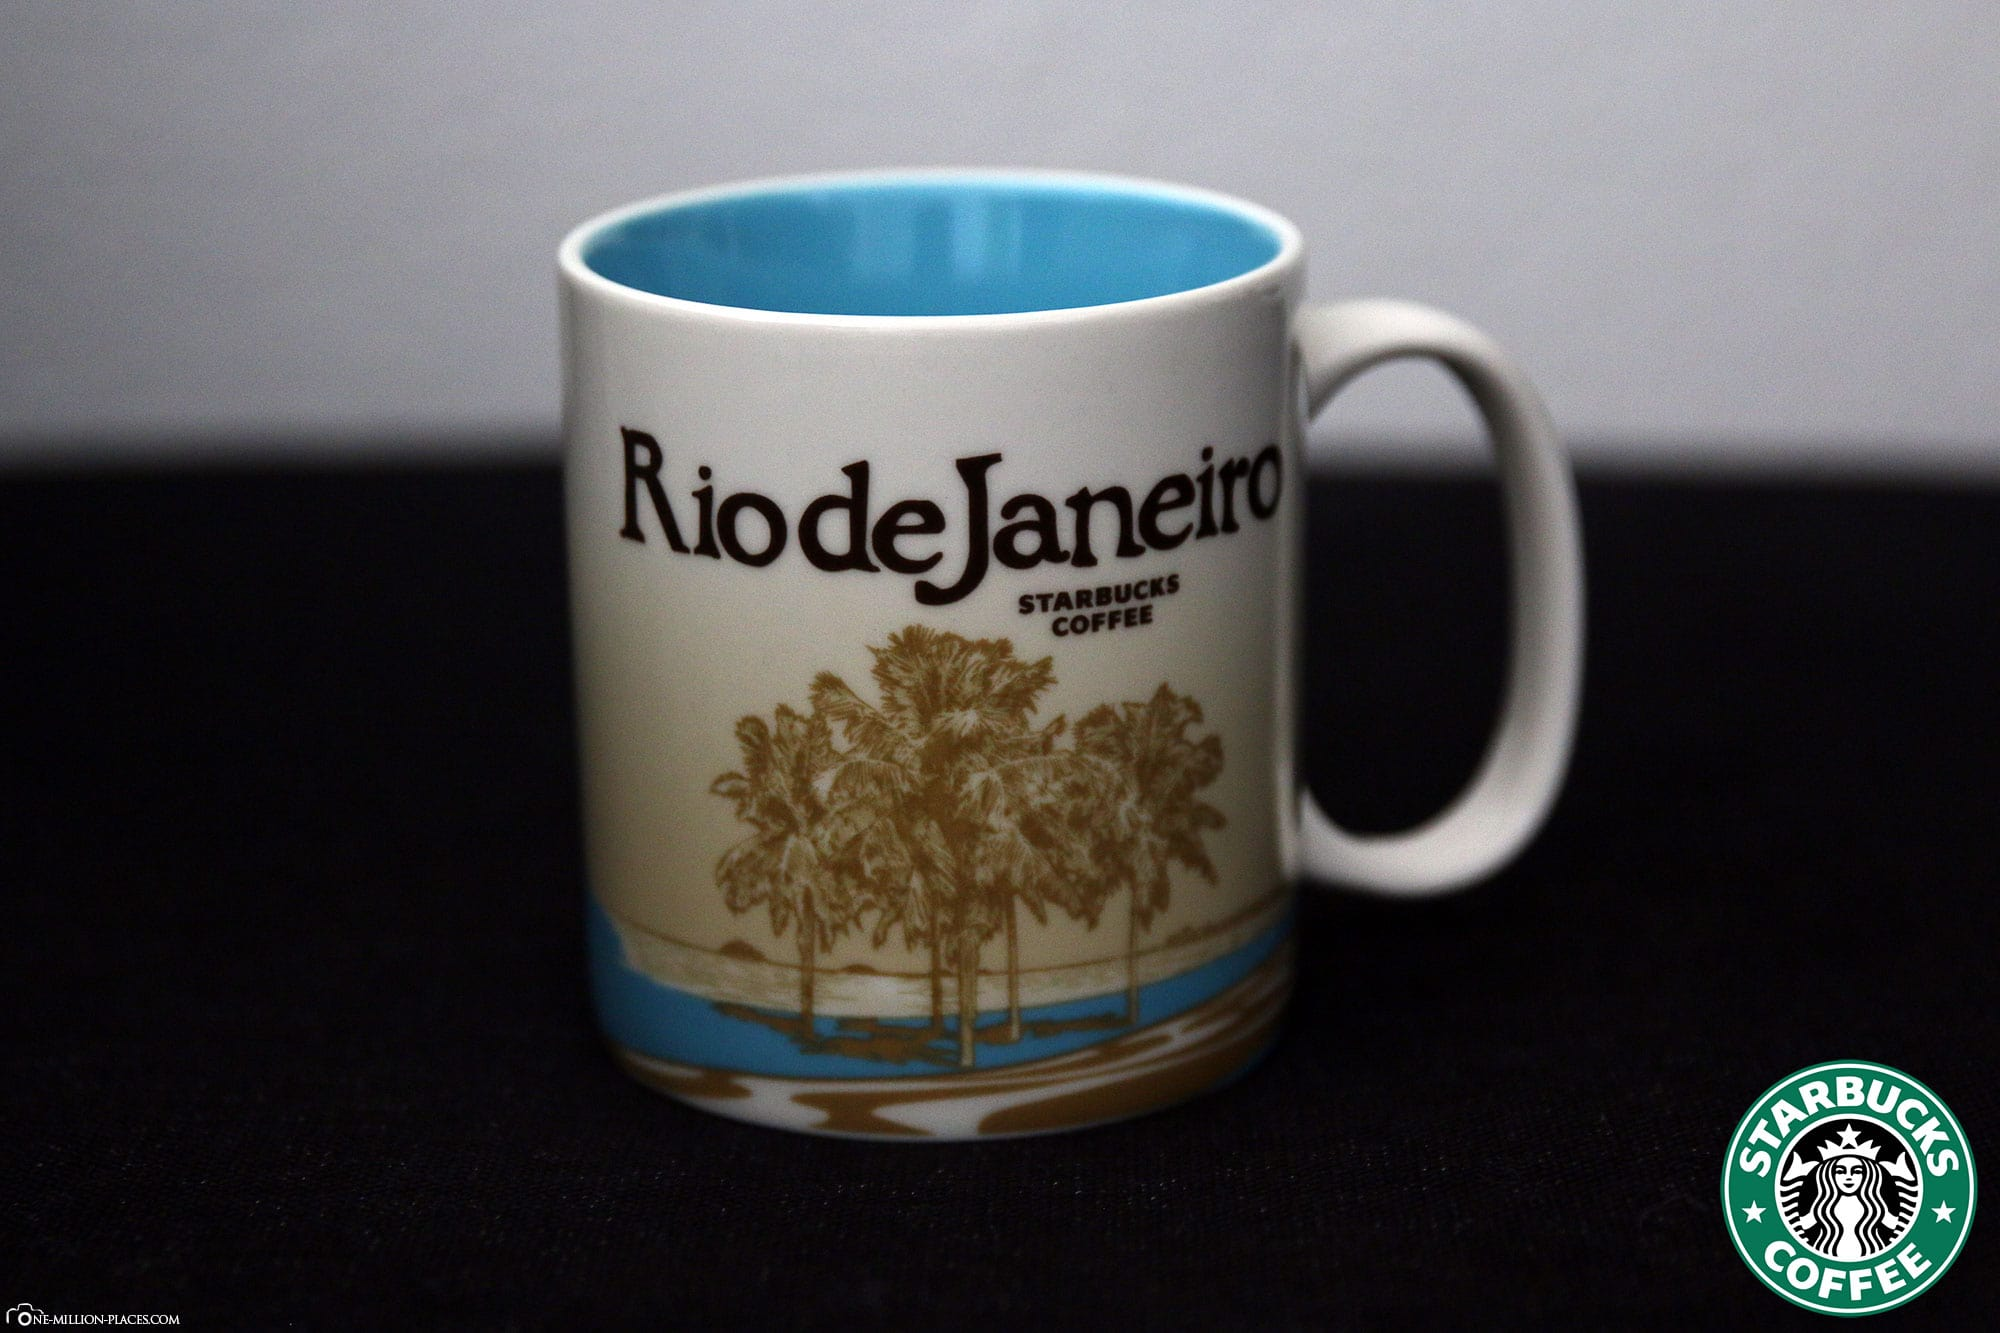 Rio de Janeiro, Starbucks Cup, Global Icon Series, City Mugs, Collection, Brazil, Travelreport